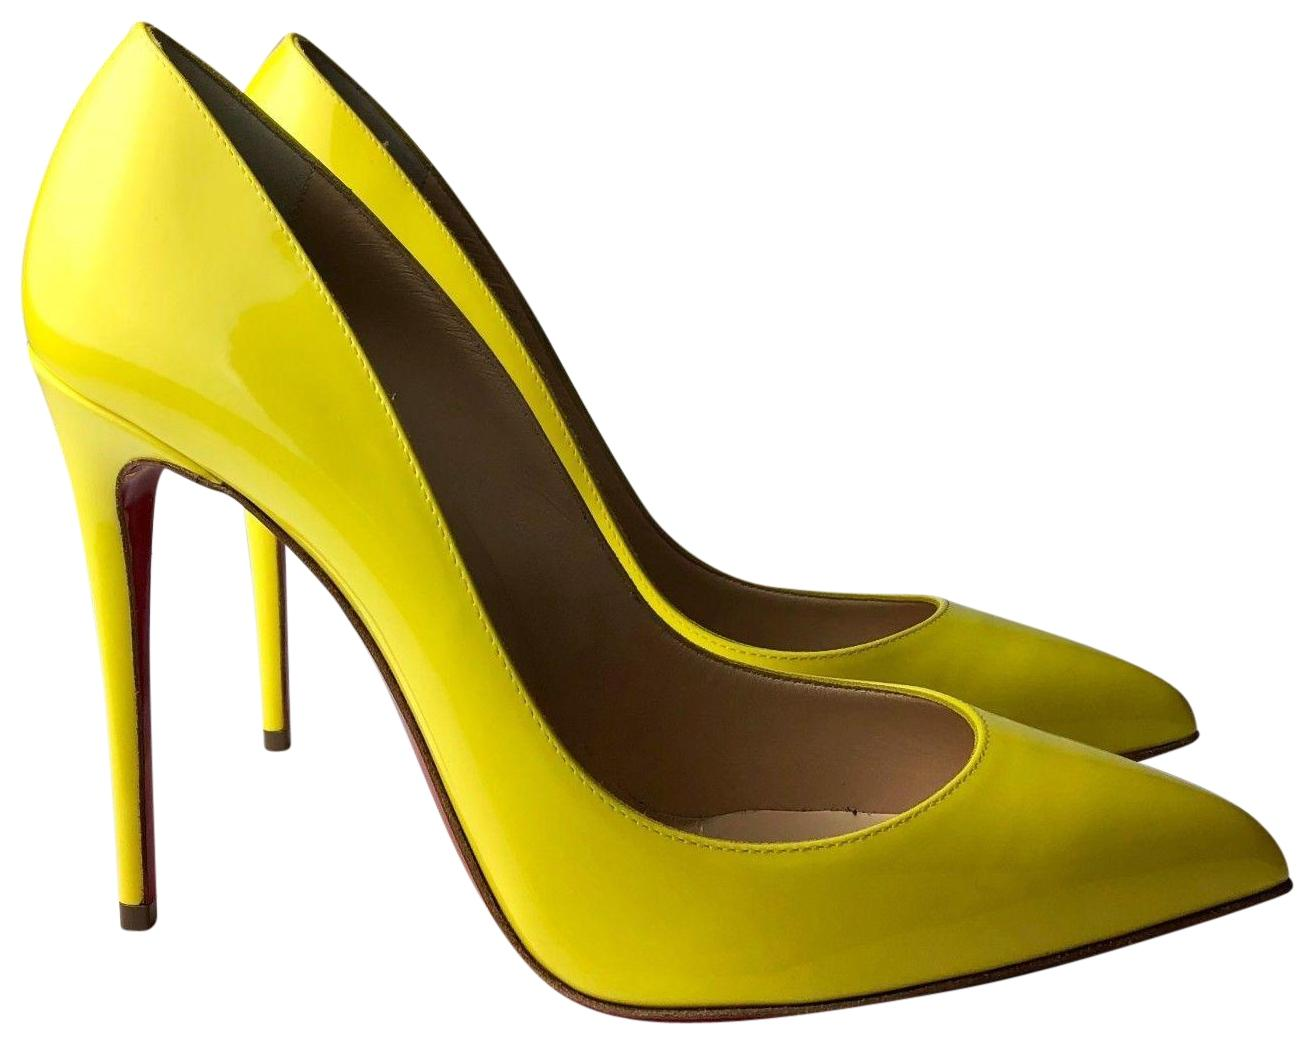 a5ab223c2387 Christian Louboutin Louboutin Louboutin Yellow Pigalle Follies 100 Patent  Sun Pumps Size EU 35 (Approx. US 5) Regular (M